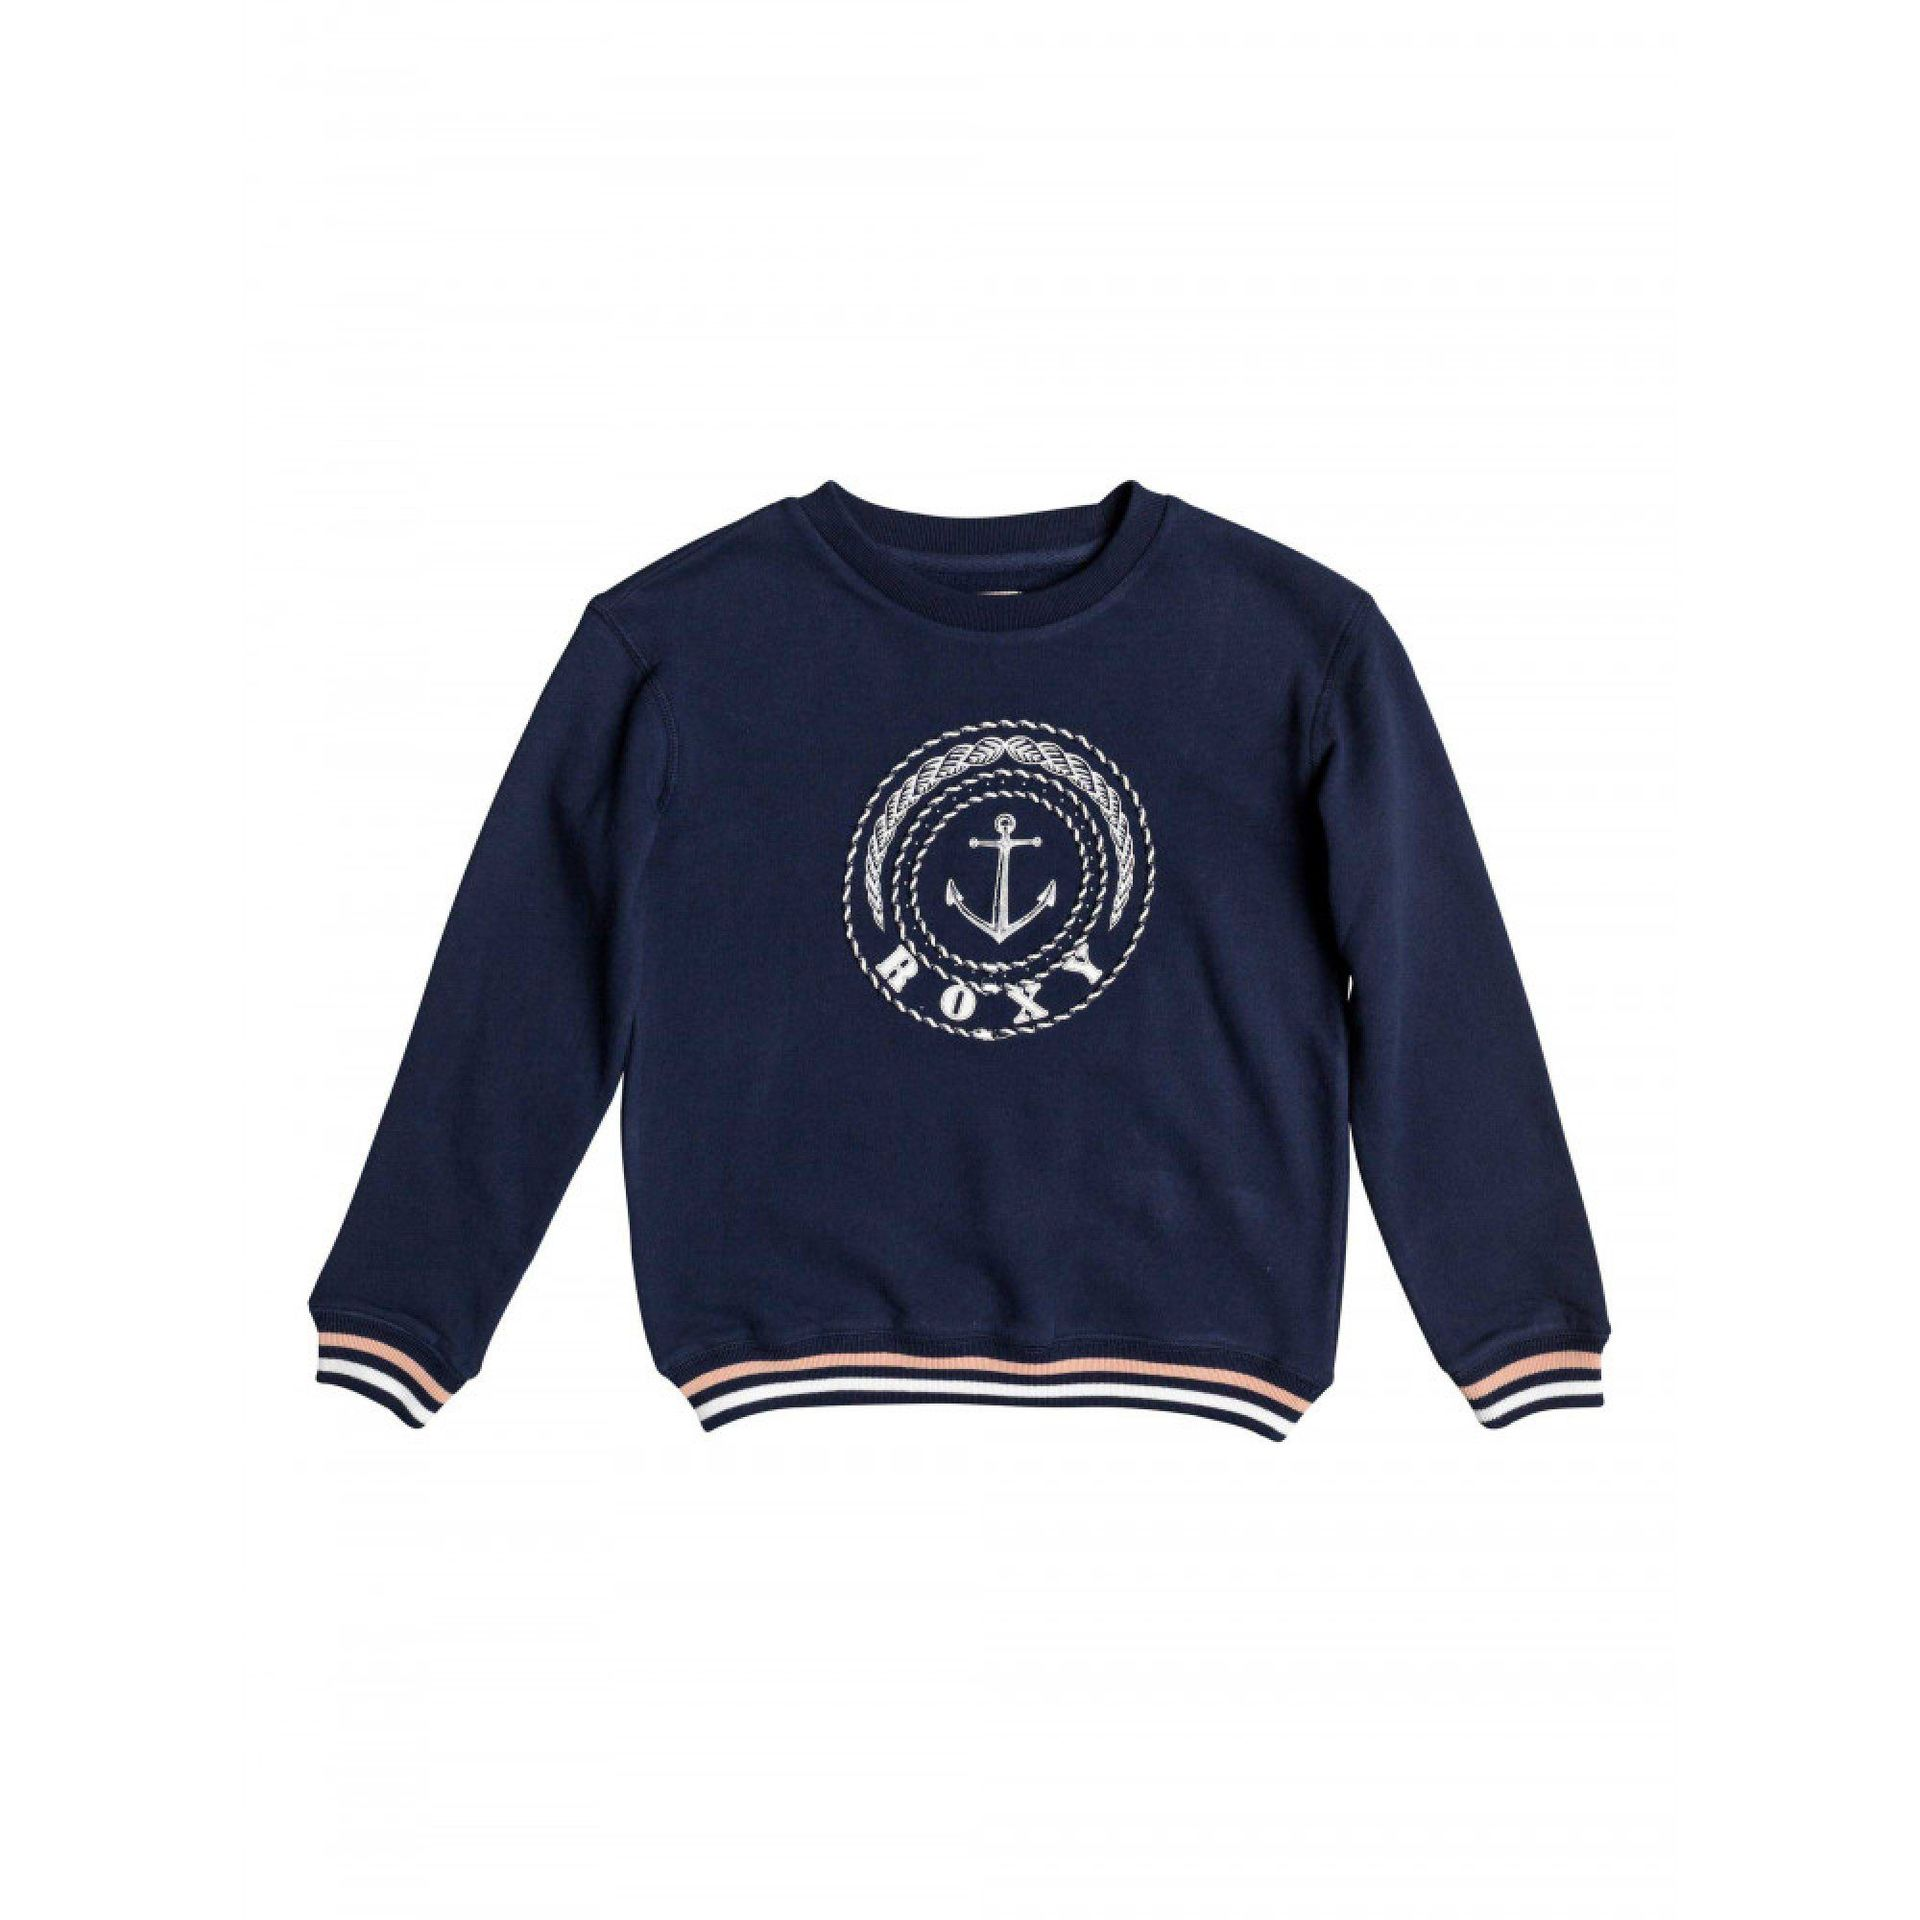 BLUZA ROXY GIRLS 2-6 SSHINE ALL DAY ANCHOR